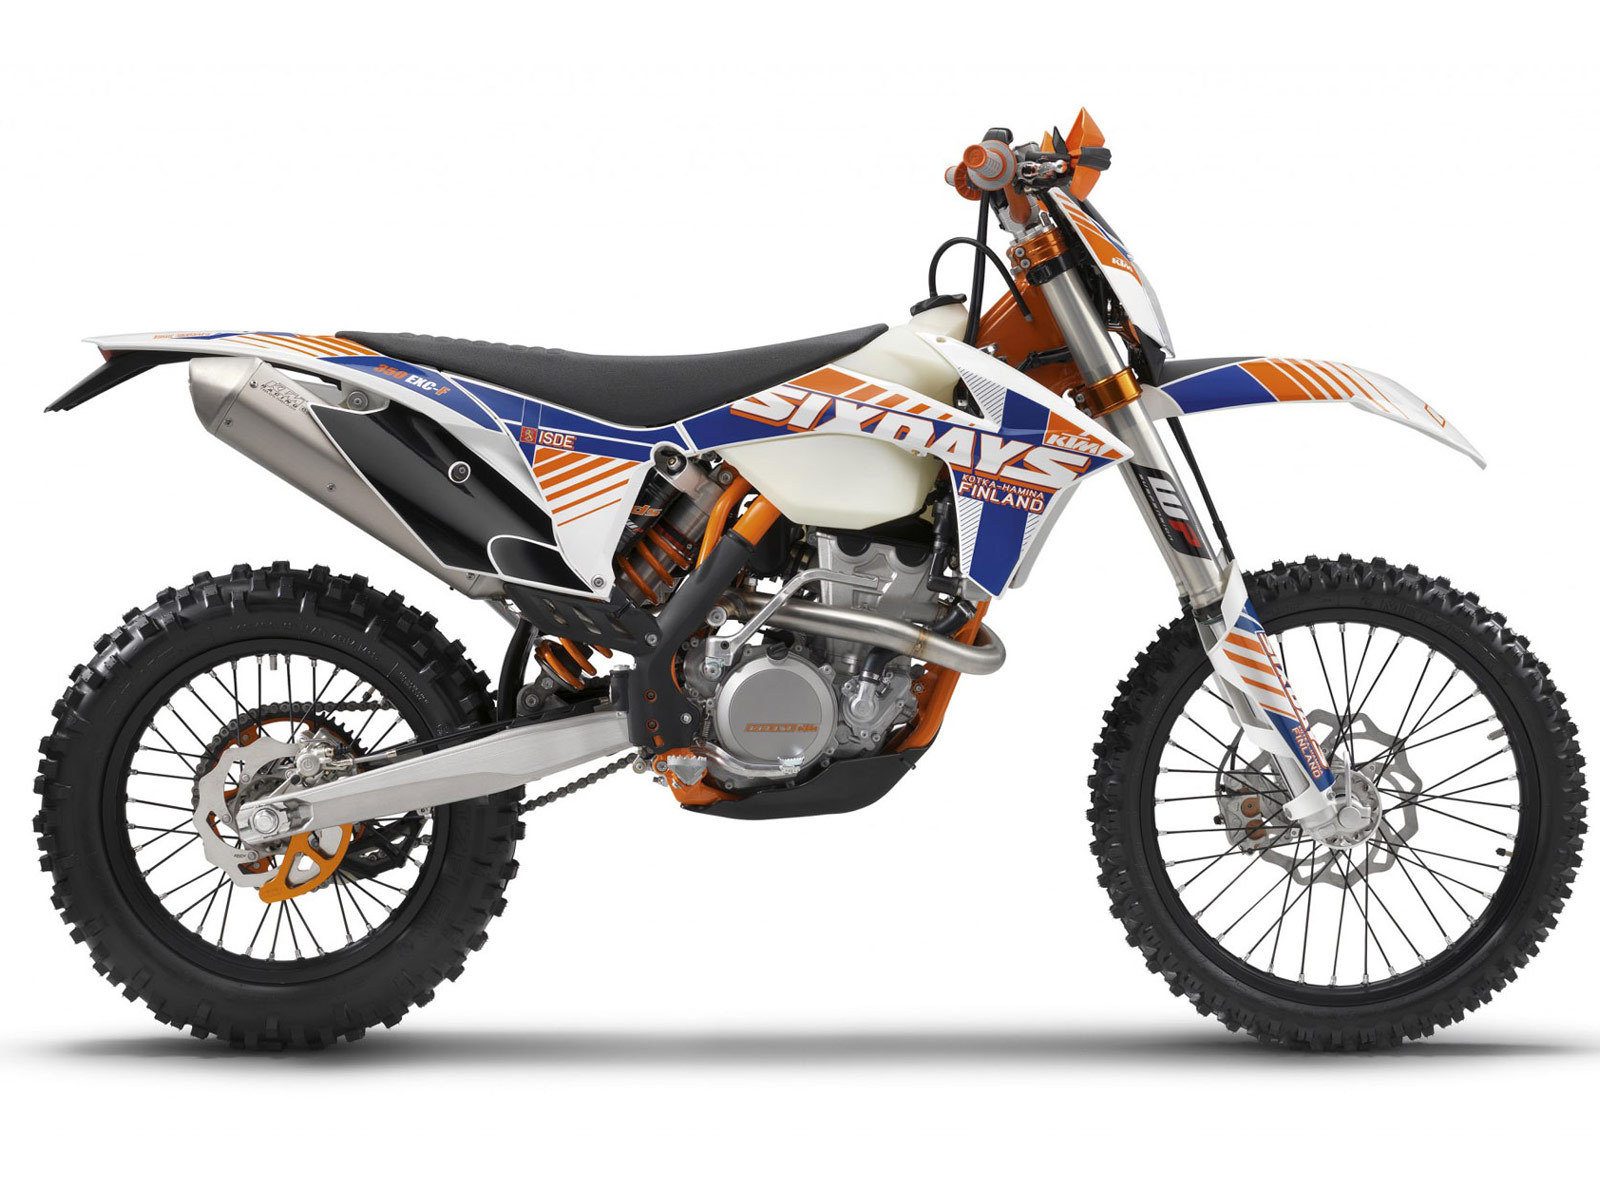 2012 ktm 300 exc six days picture 435781 motorcycle review top speed. Black Bedroom Furniture Sets. Home Design Ideas